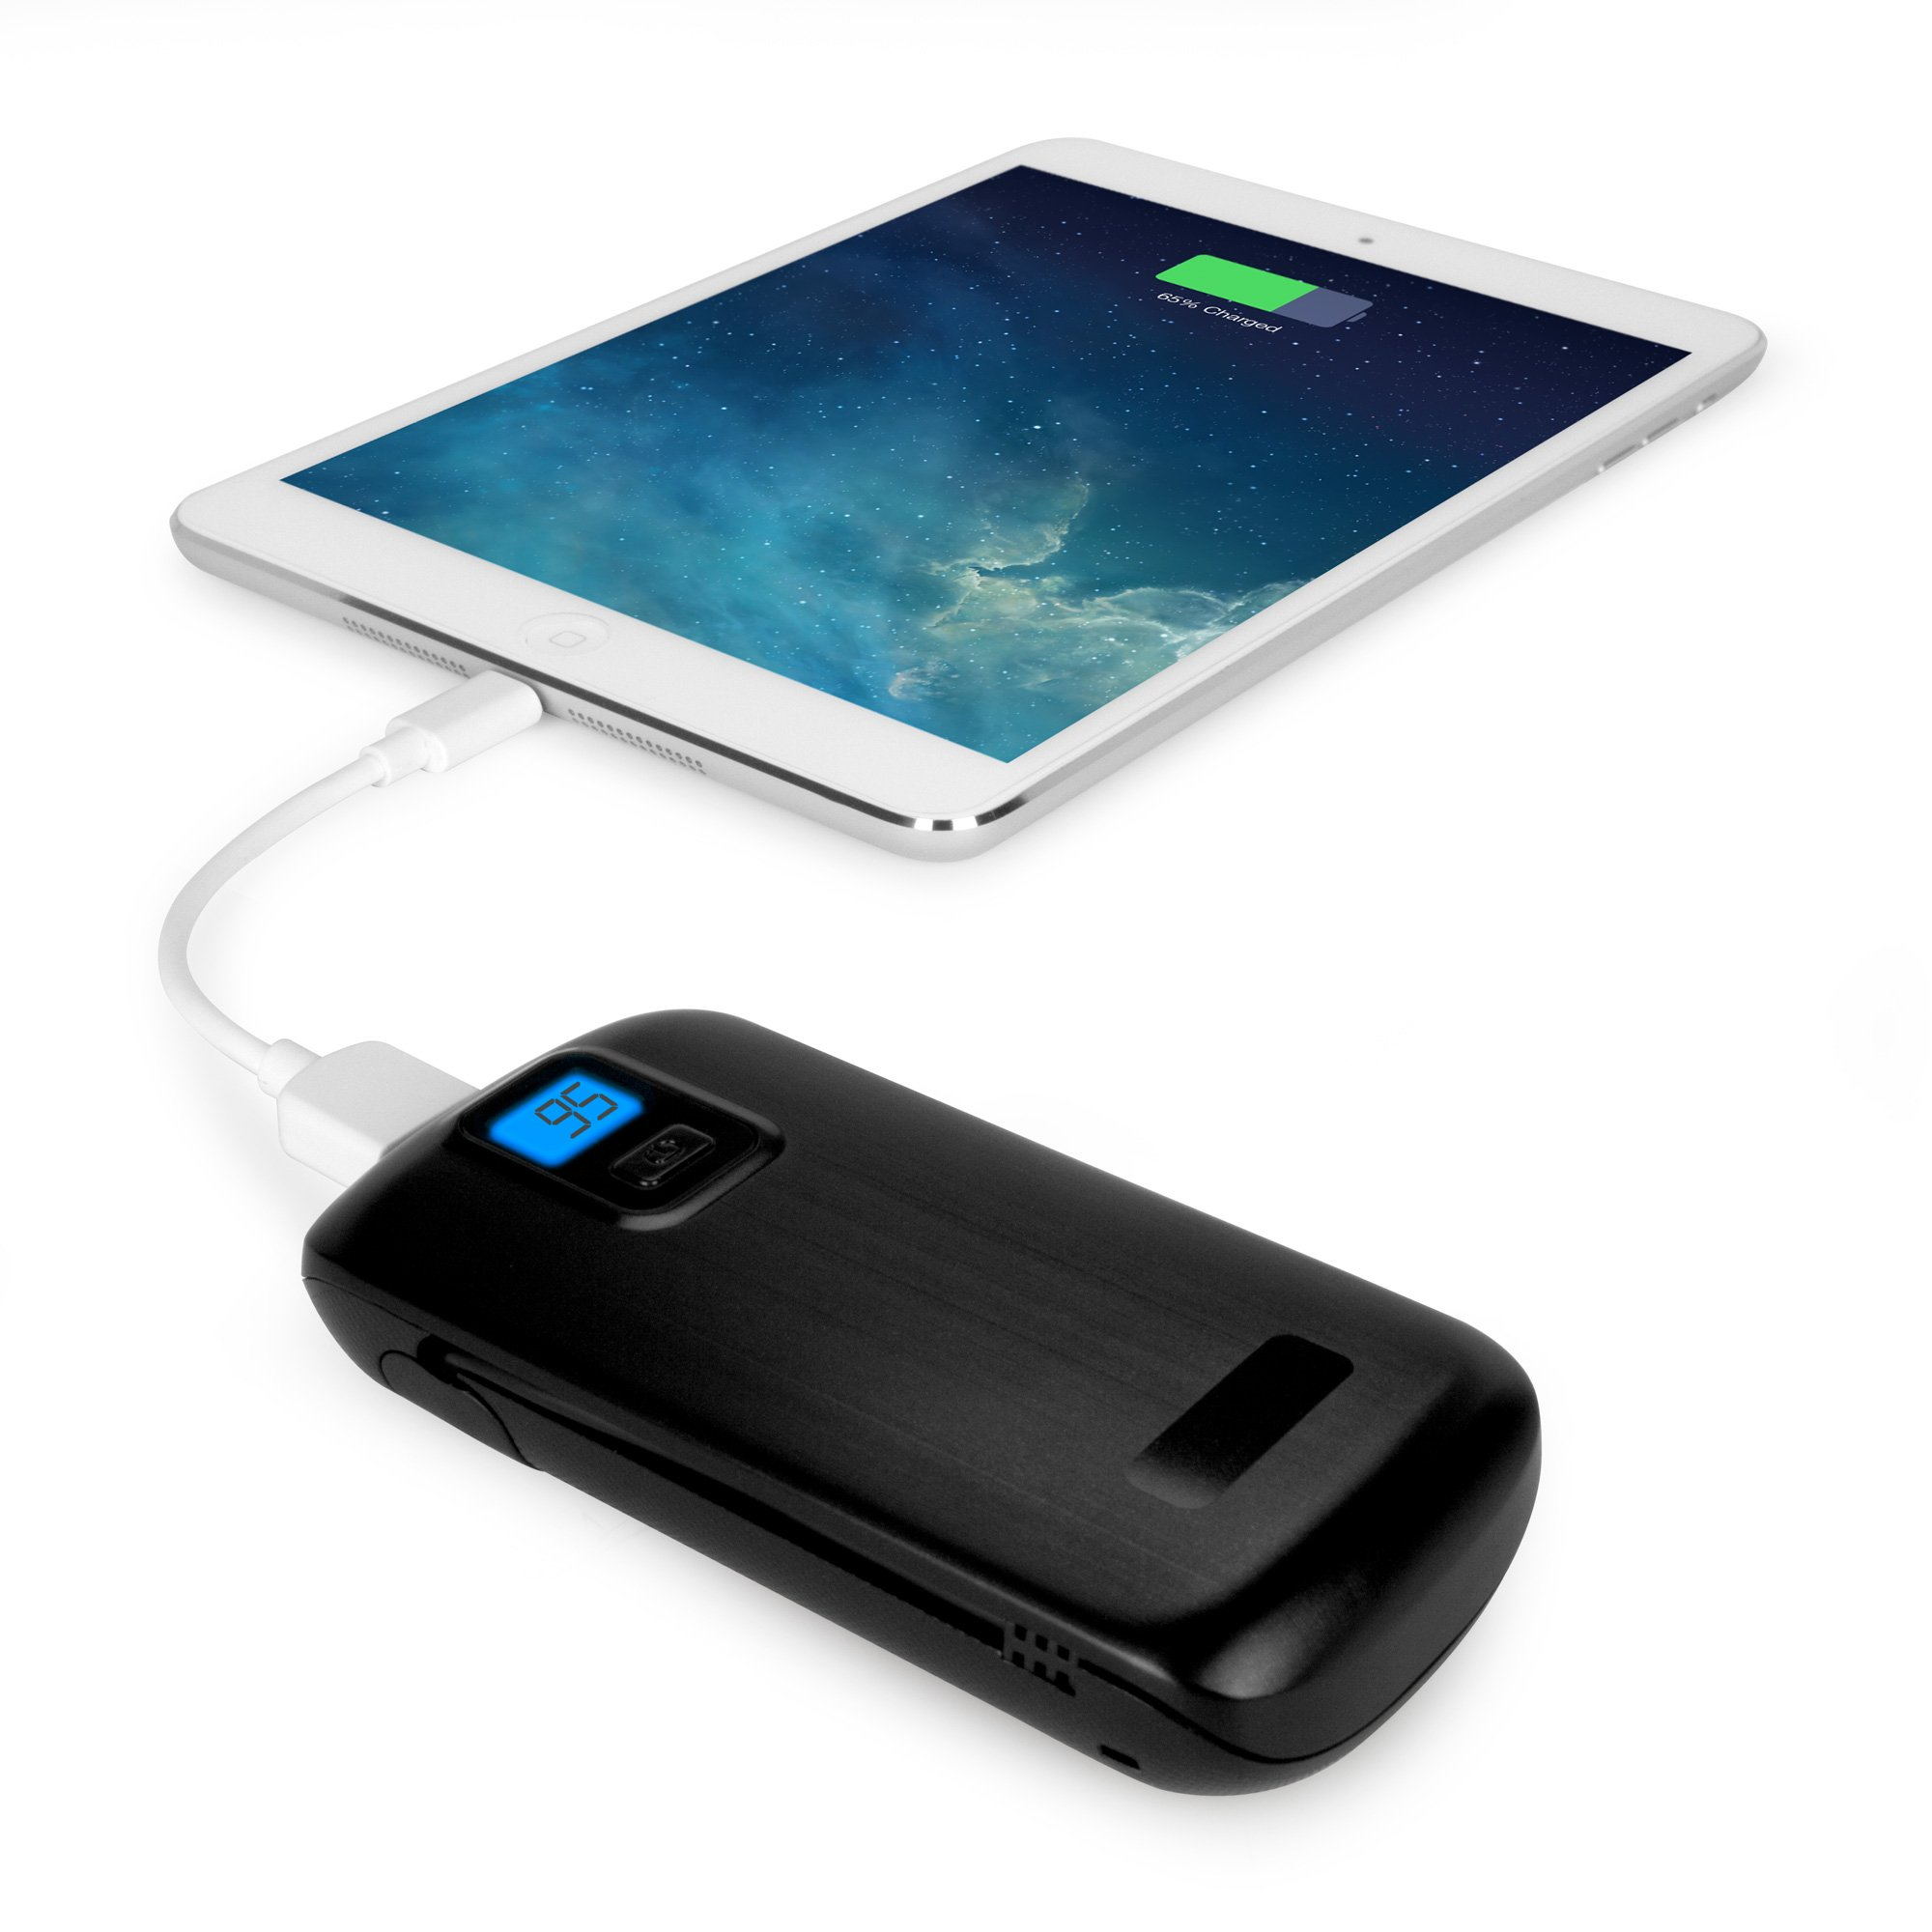 BoxWave Rejuva Power Pack Pro Power Bank - Compact, Portable 4,400 mAh Rechargeable Li-ion Battery Charger and Power Bank - Compatible with Apple iPhone 5, iPhone 6, iPad 3, iPad 4, iPad Air, Samsung Galaxy S4, Galaxy S5, OnePlus One, and many more! (Blac by BoxWave (Image #7)